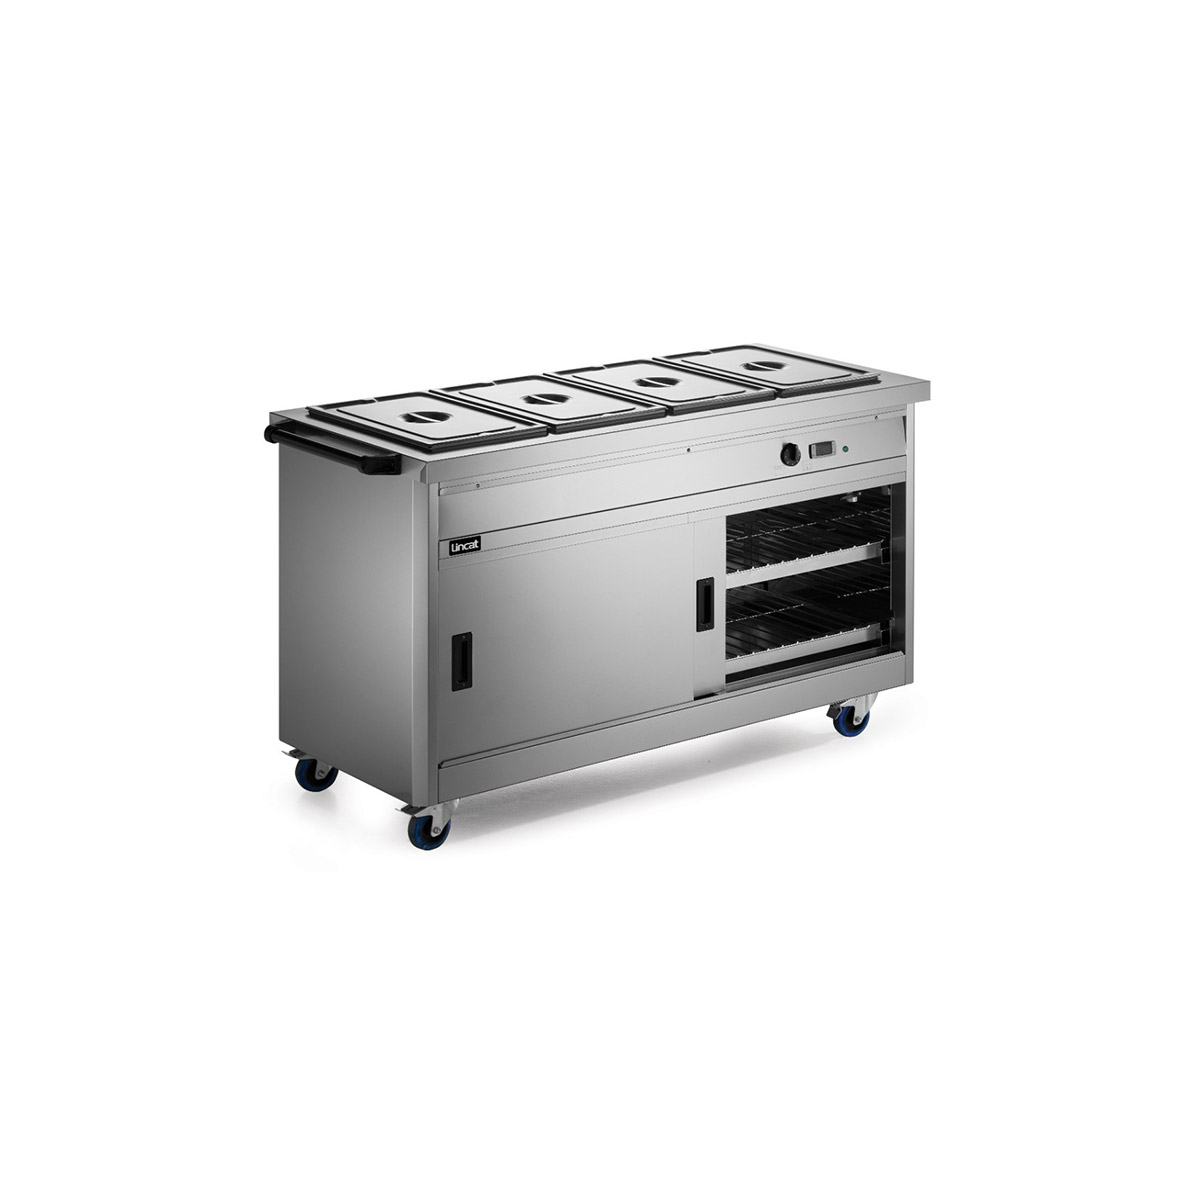 P6B4 - Lincat Panther 670 Series Free-standing Hot Cupboard - Bain Marie Top - 4GN - W 1530 mm - 4.9 kW